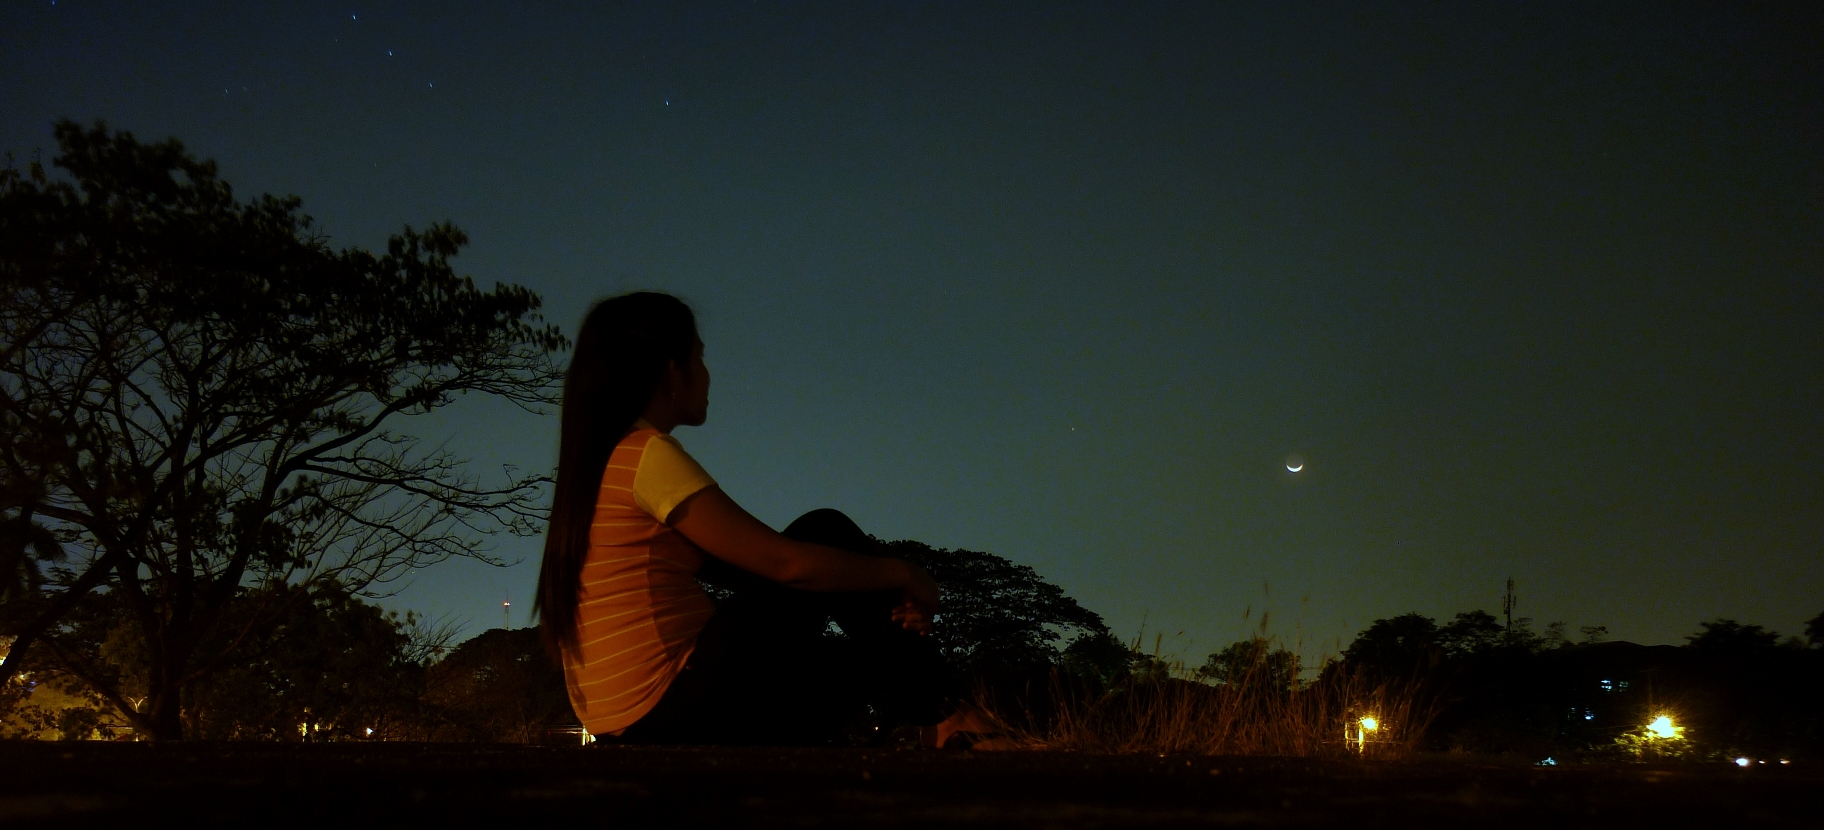 Staring At The Beauty Of Night Sky